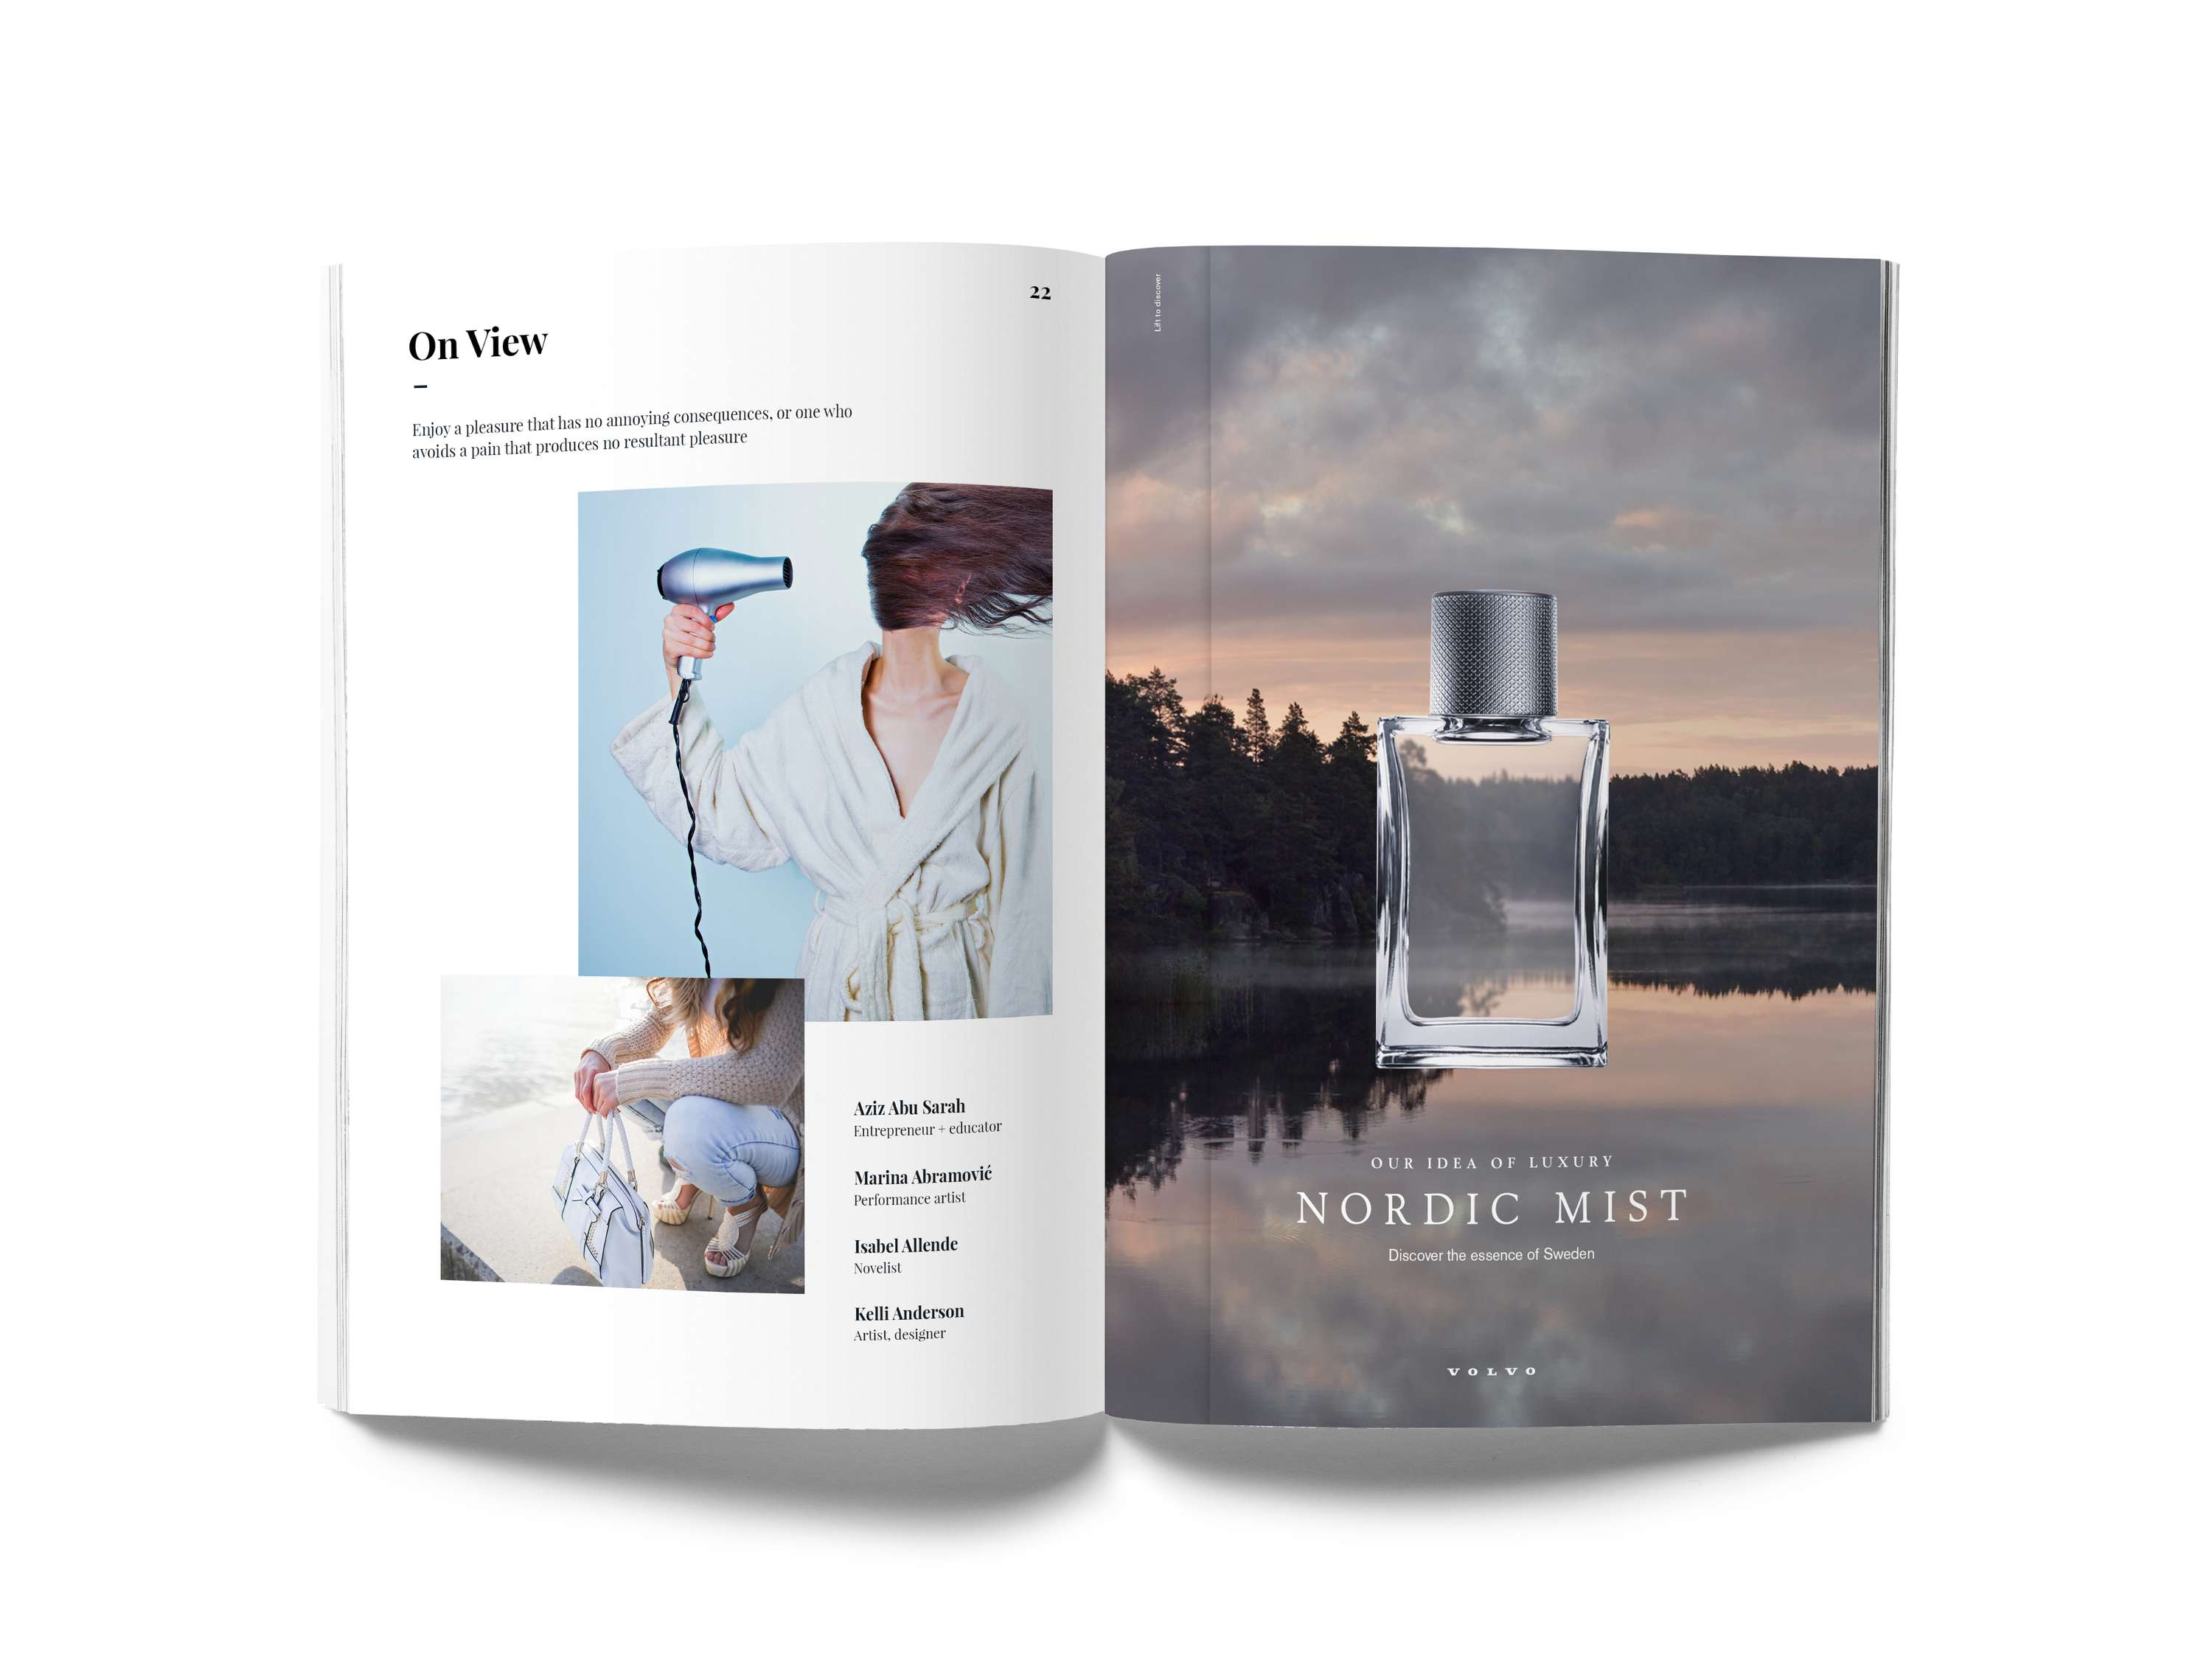 Volvo Cars – Nordic Mist Perfume (Concept) | The Dots